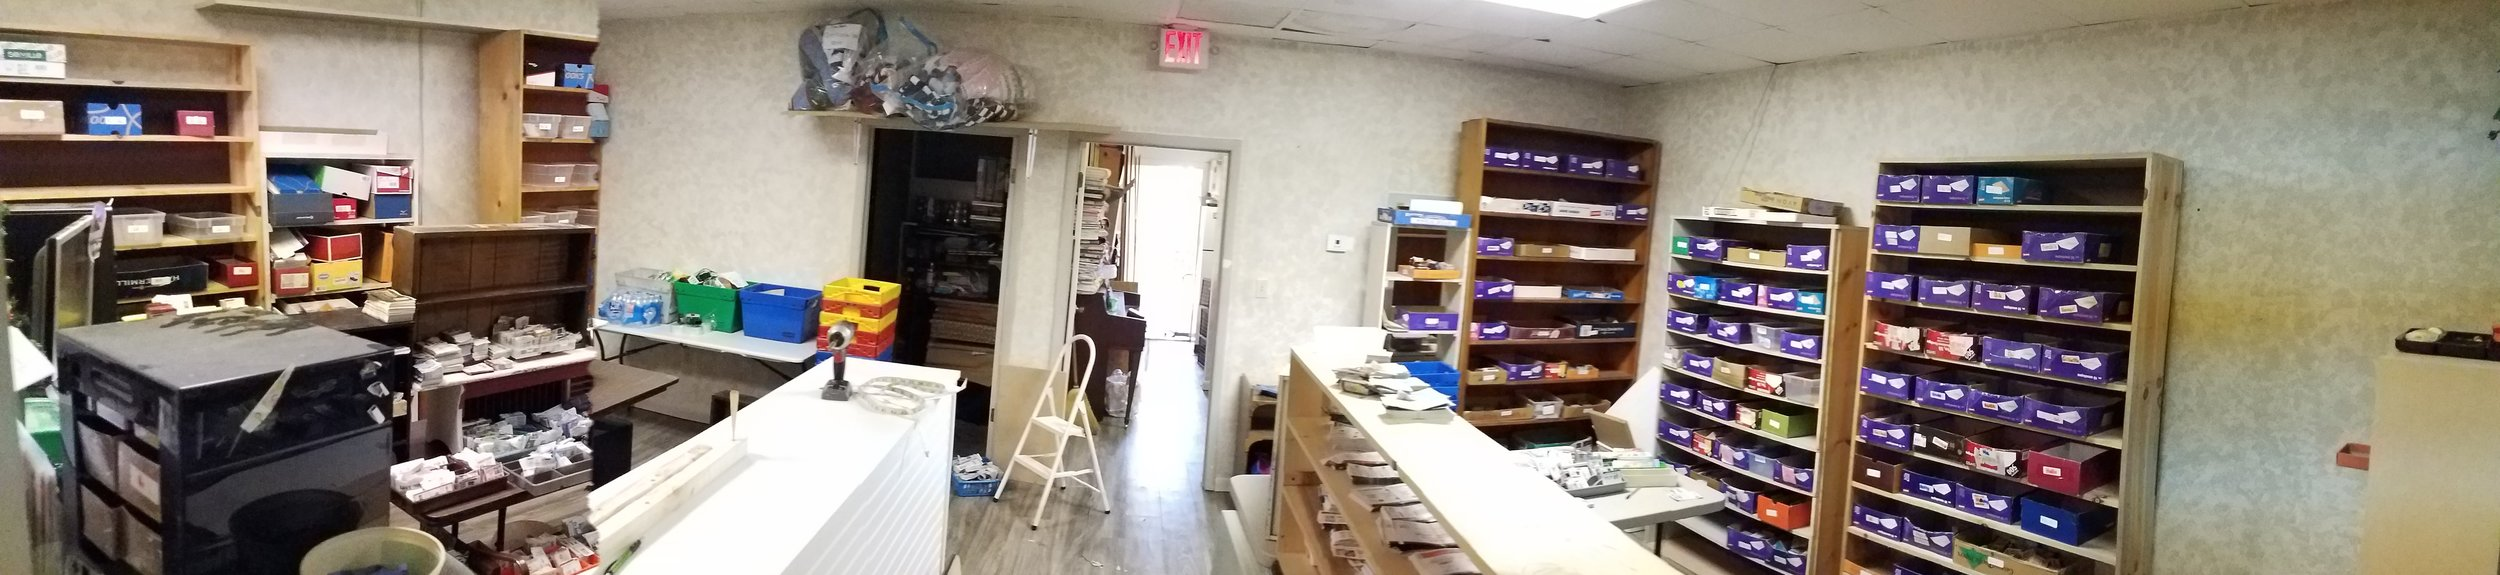 This was our former fabric store. It was transformed into the perfect coupon room within a matter of about 6 hours last Friday! (once we got the fabrics out!) In the meantime, two doors down, we were putting things in place and making huge strides in organization!